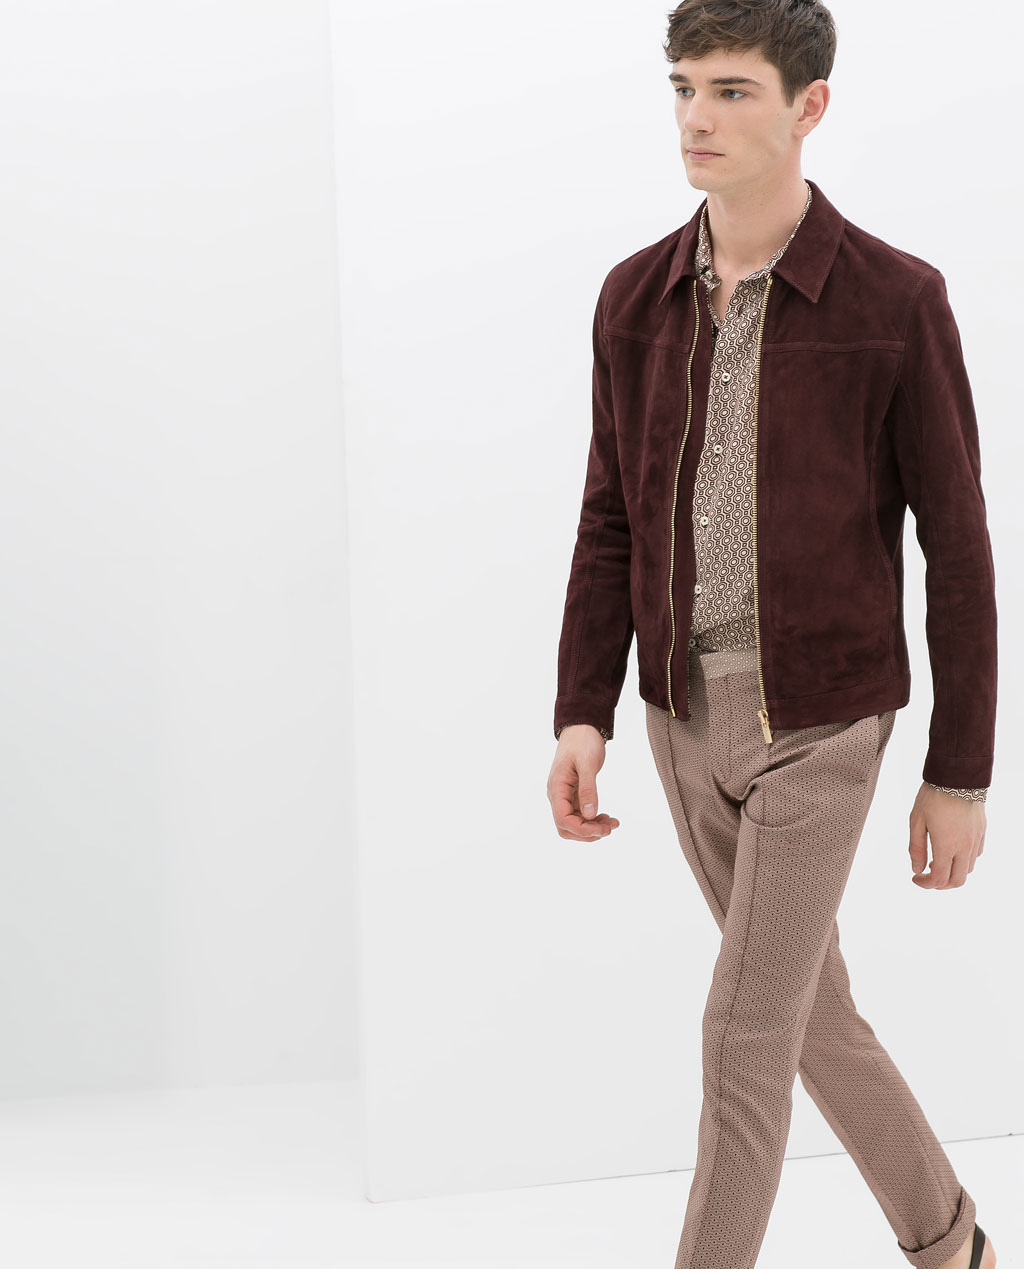 10 Summer Jackets For Men From Zara | The Fashion Supernova